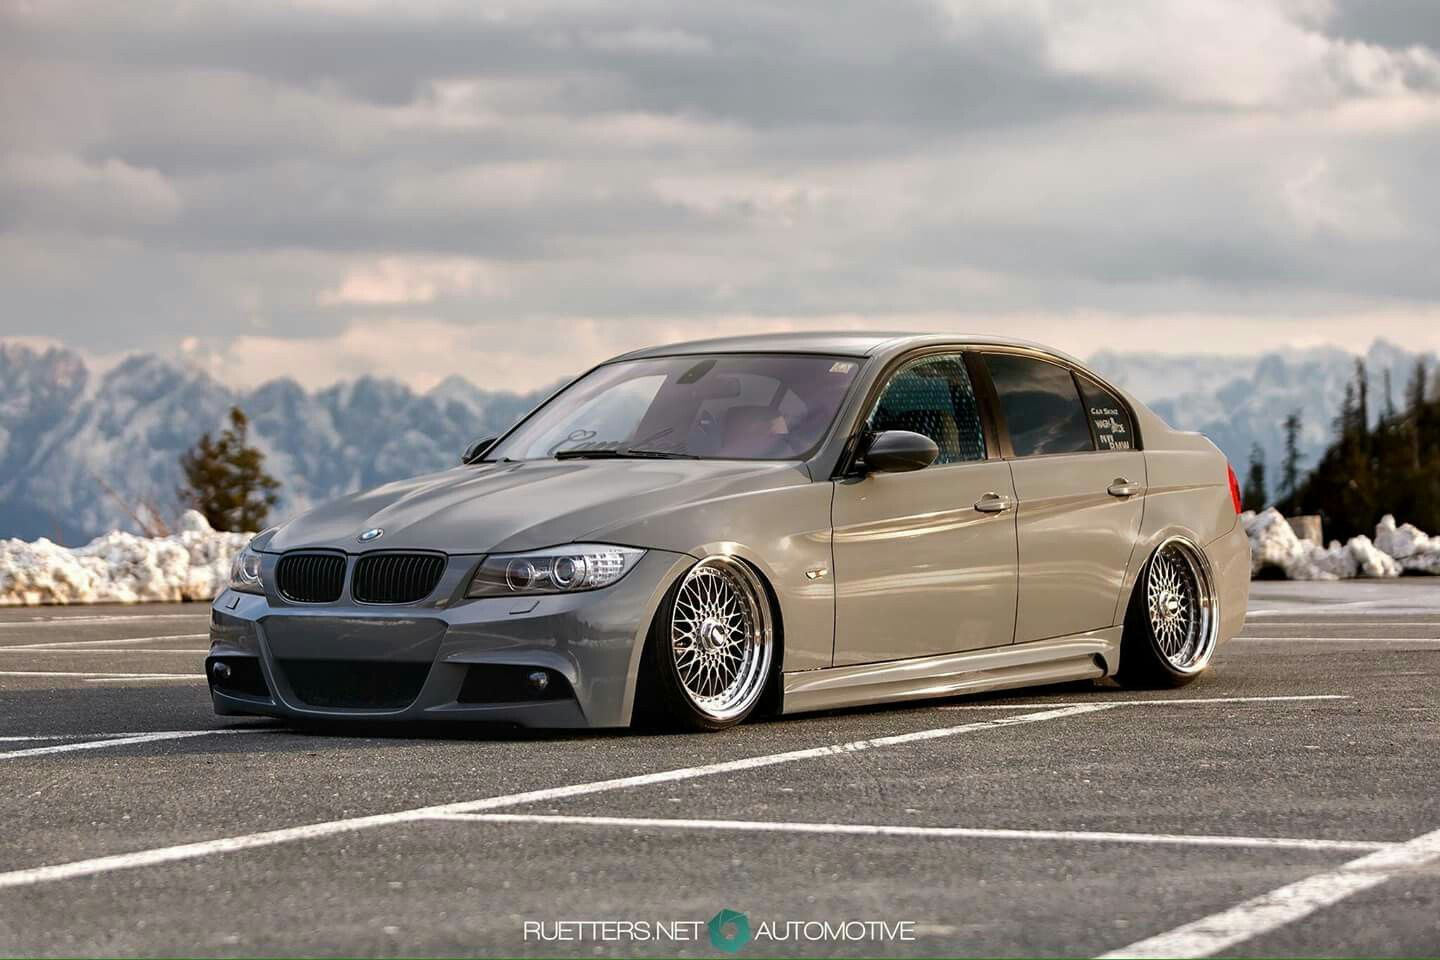 Bmw E90 3 Series Tan Slammed With Images Bmw